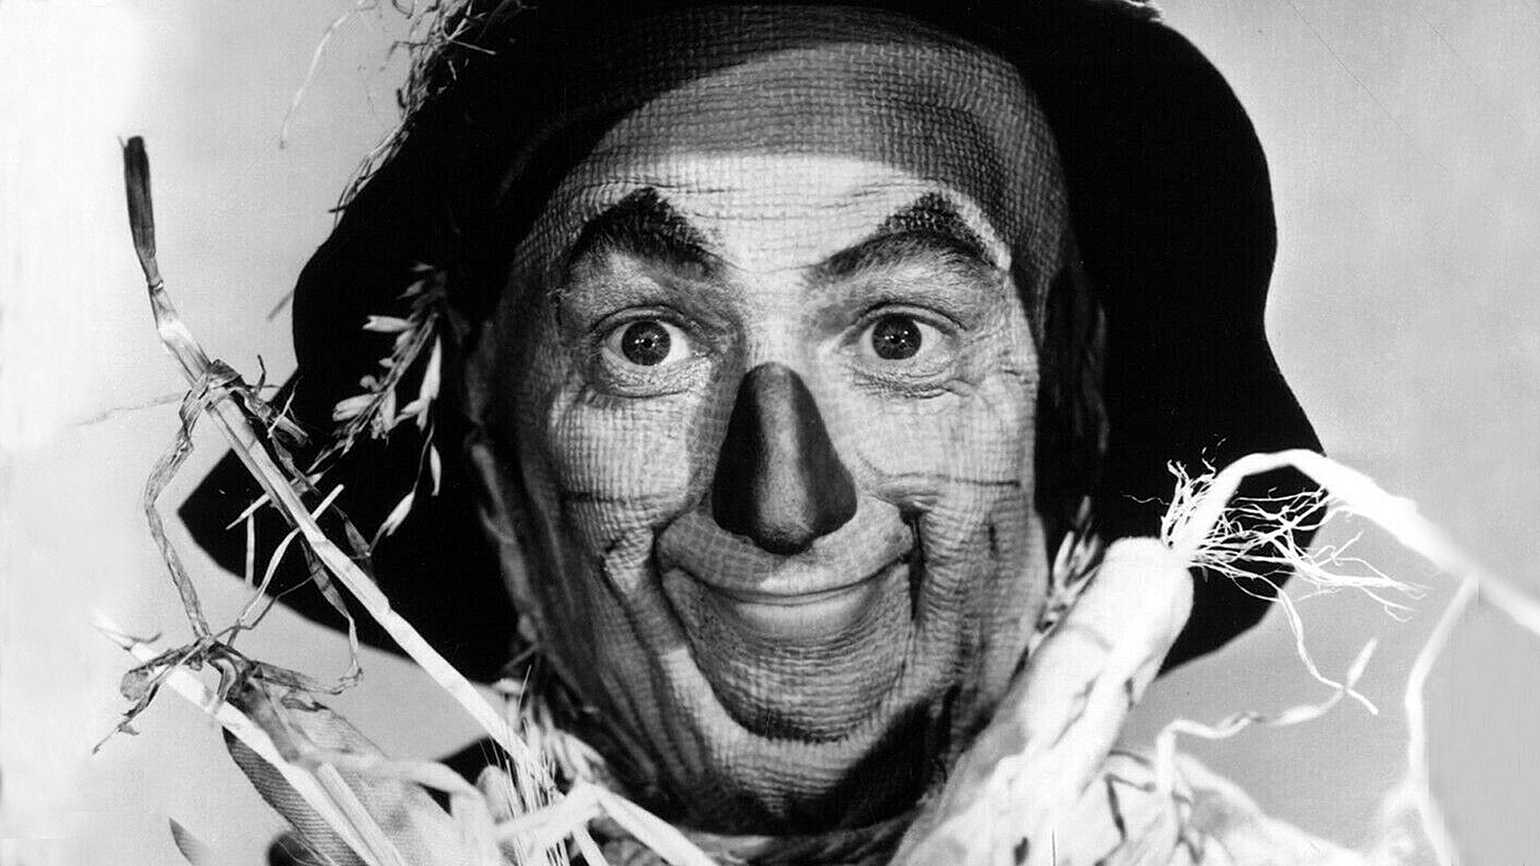 Ray Bolger in his most famous role, the Scarecrow from The Wizard of Oz